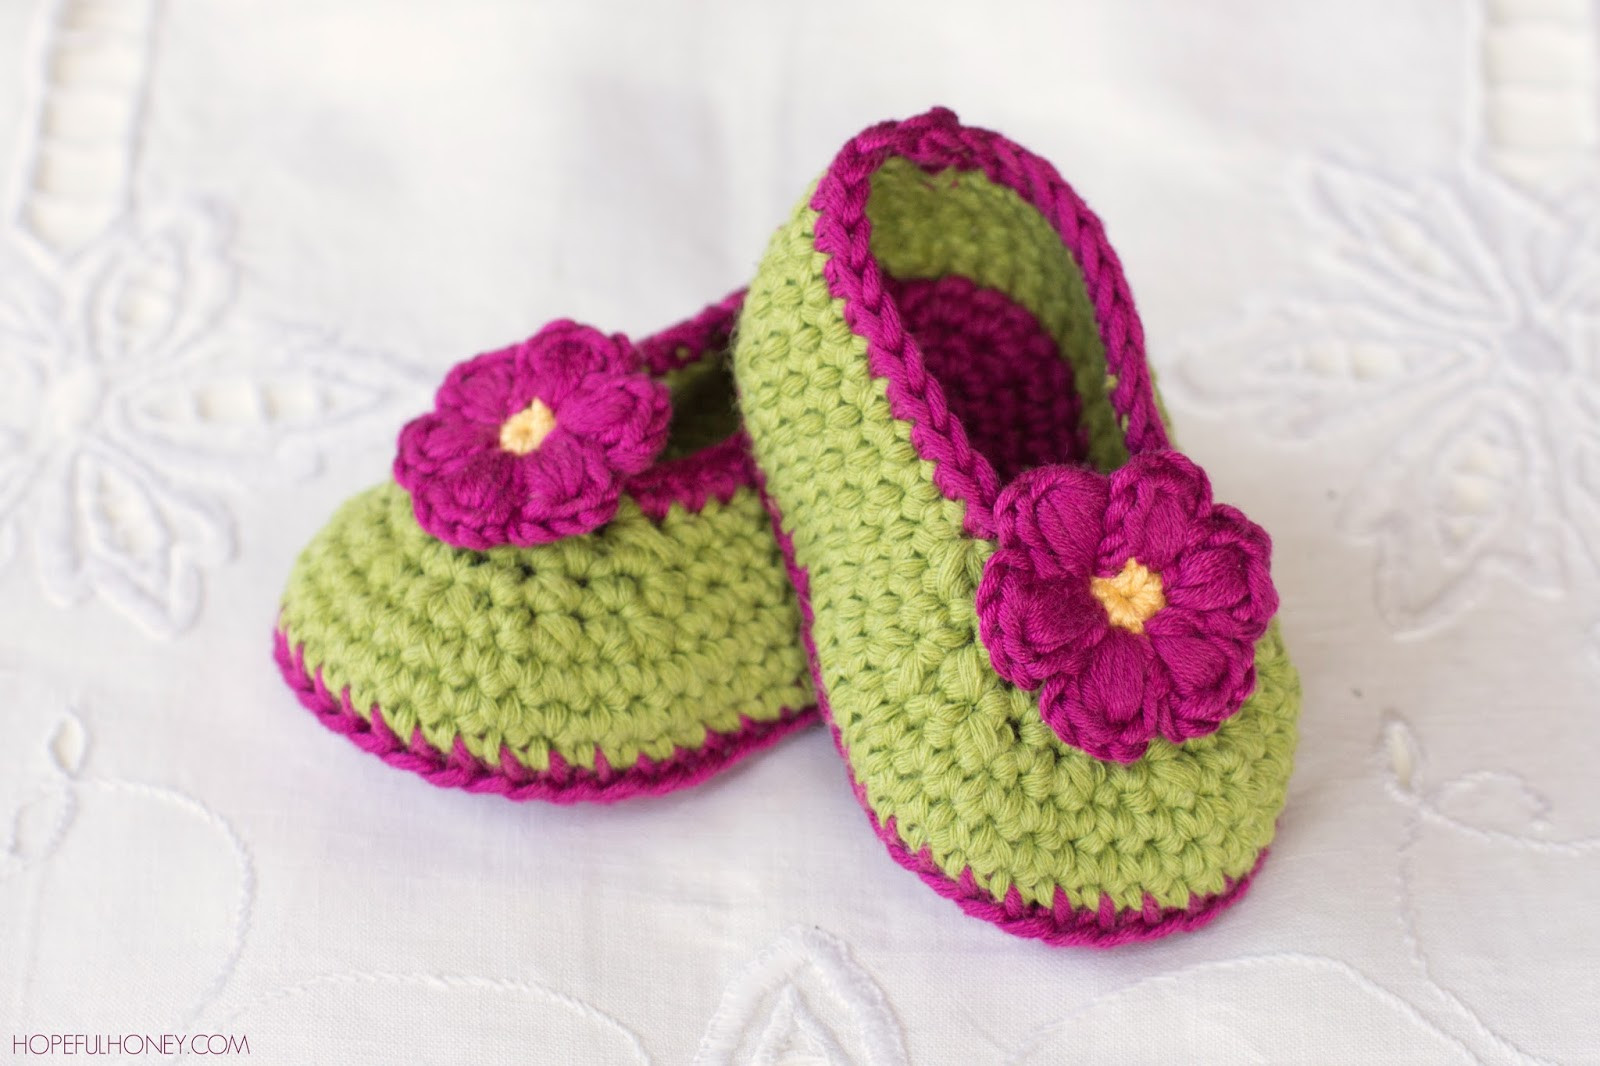 Free Crochet Patterns for Baby Shoes Unique Crochet Baby Shoe Free Patterns Of Wonderful 50 Photos Free Crochet Patterns for Baby Shoes